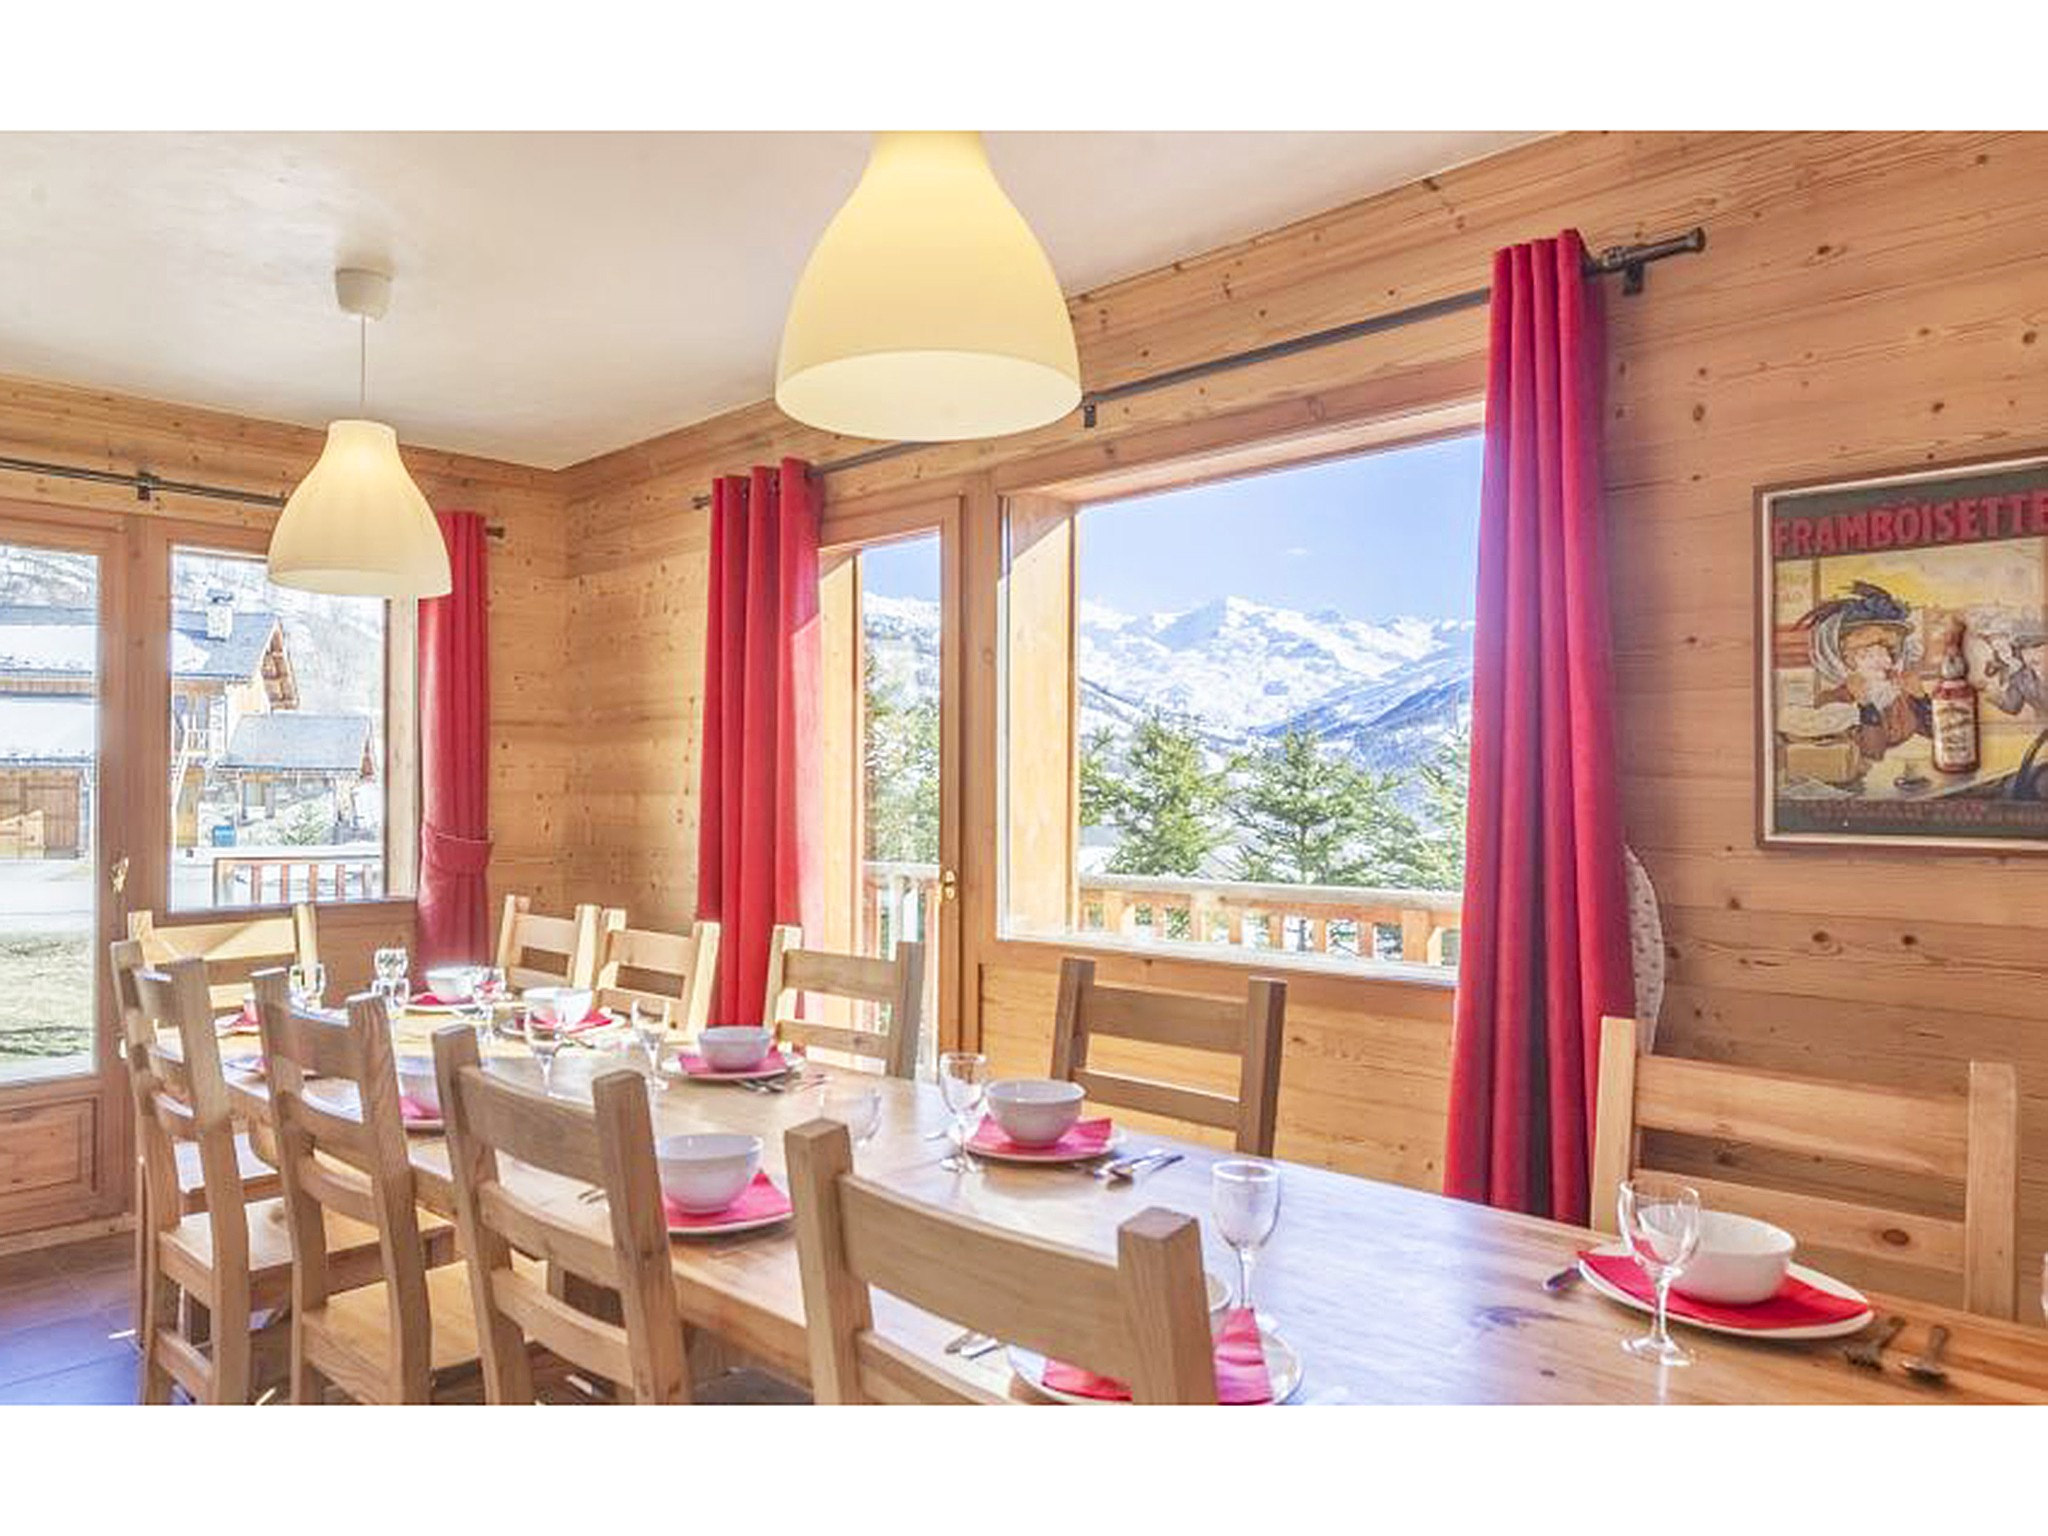 Chalet Saint Marc - dining area